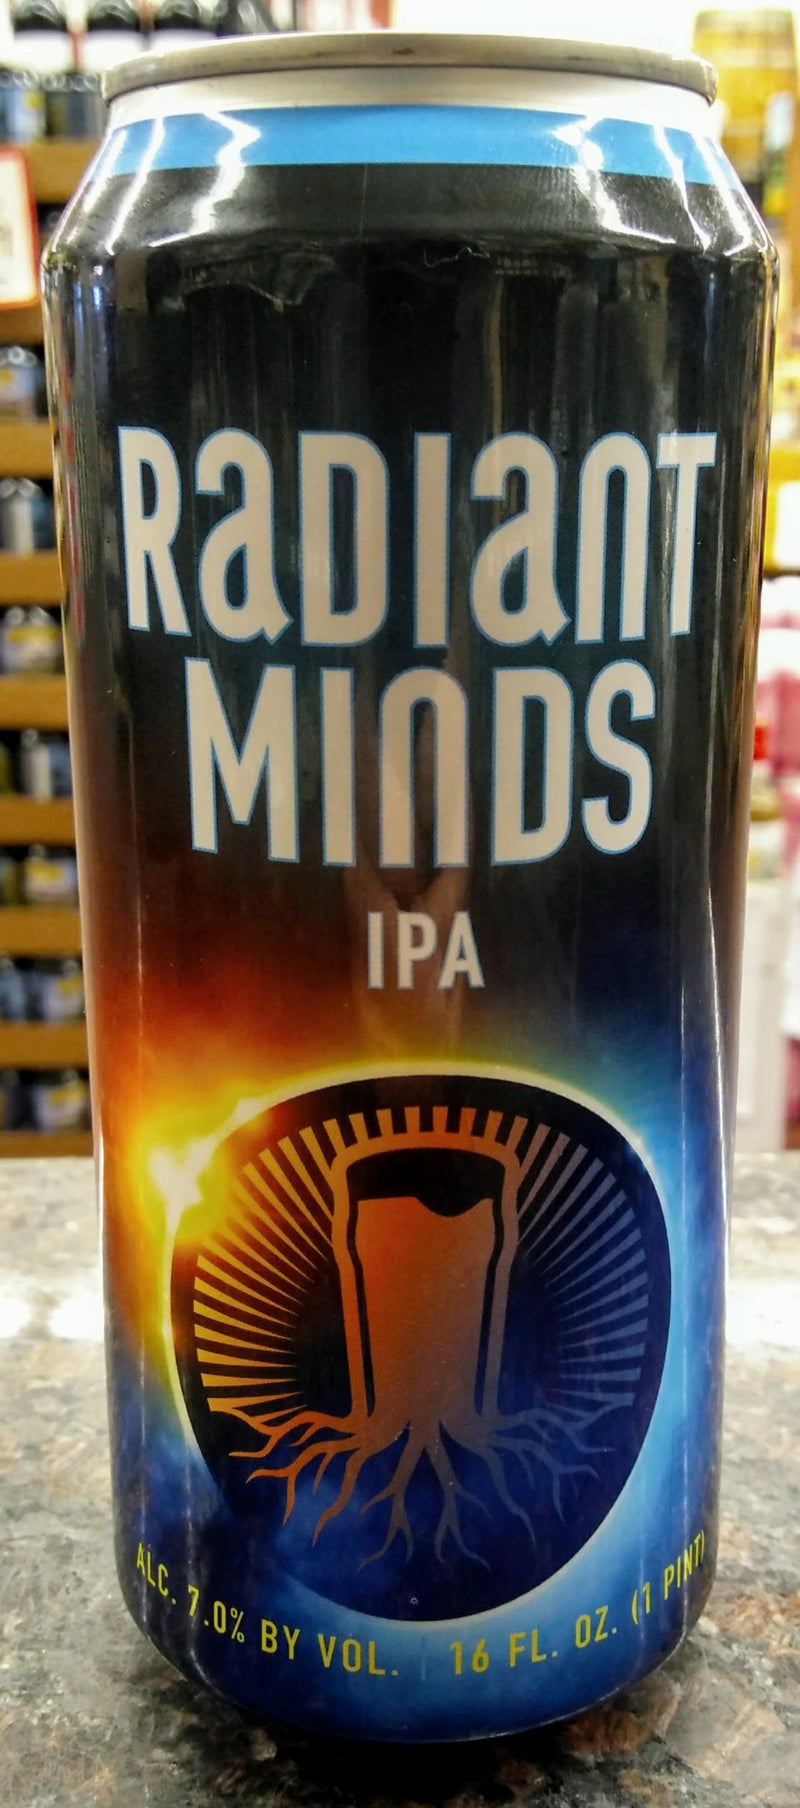 BURGEON BEER CO. RADIANT MINDS IPA 16oz can